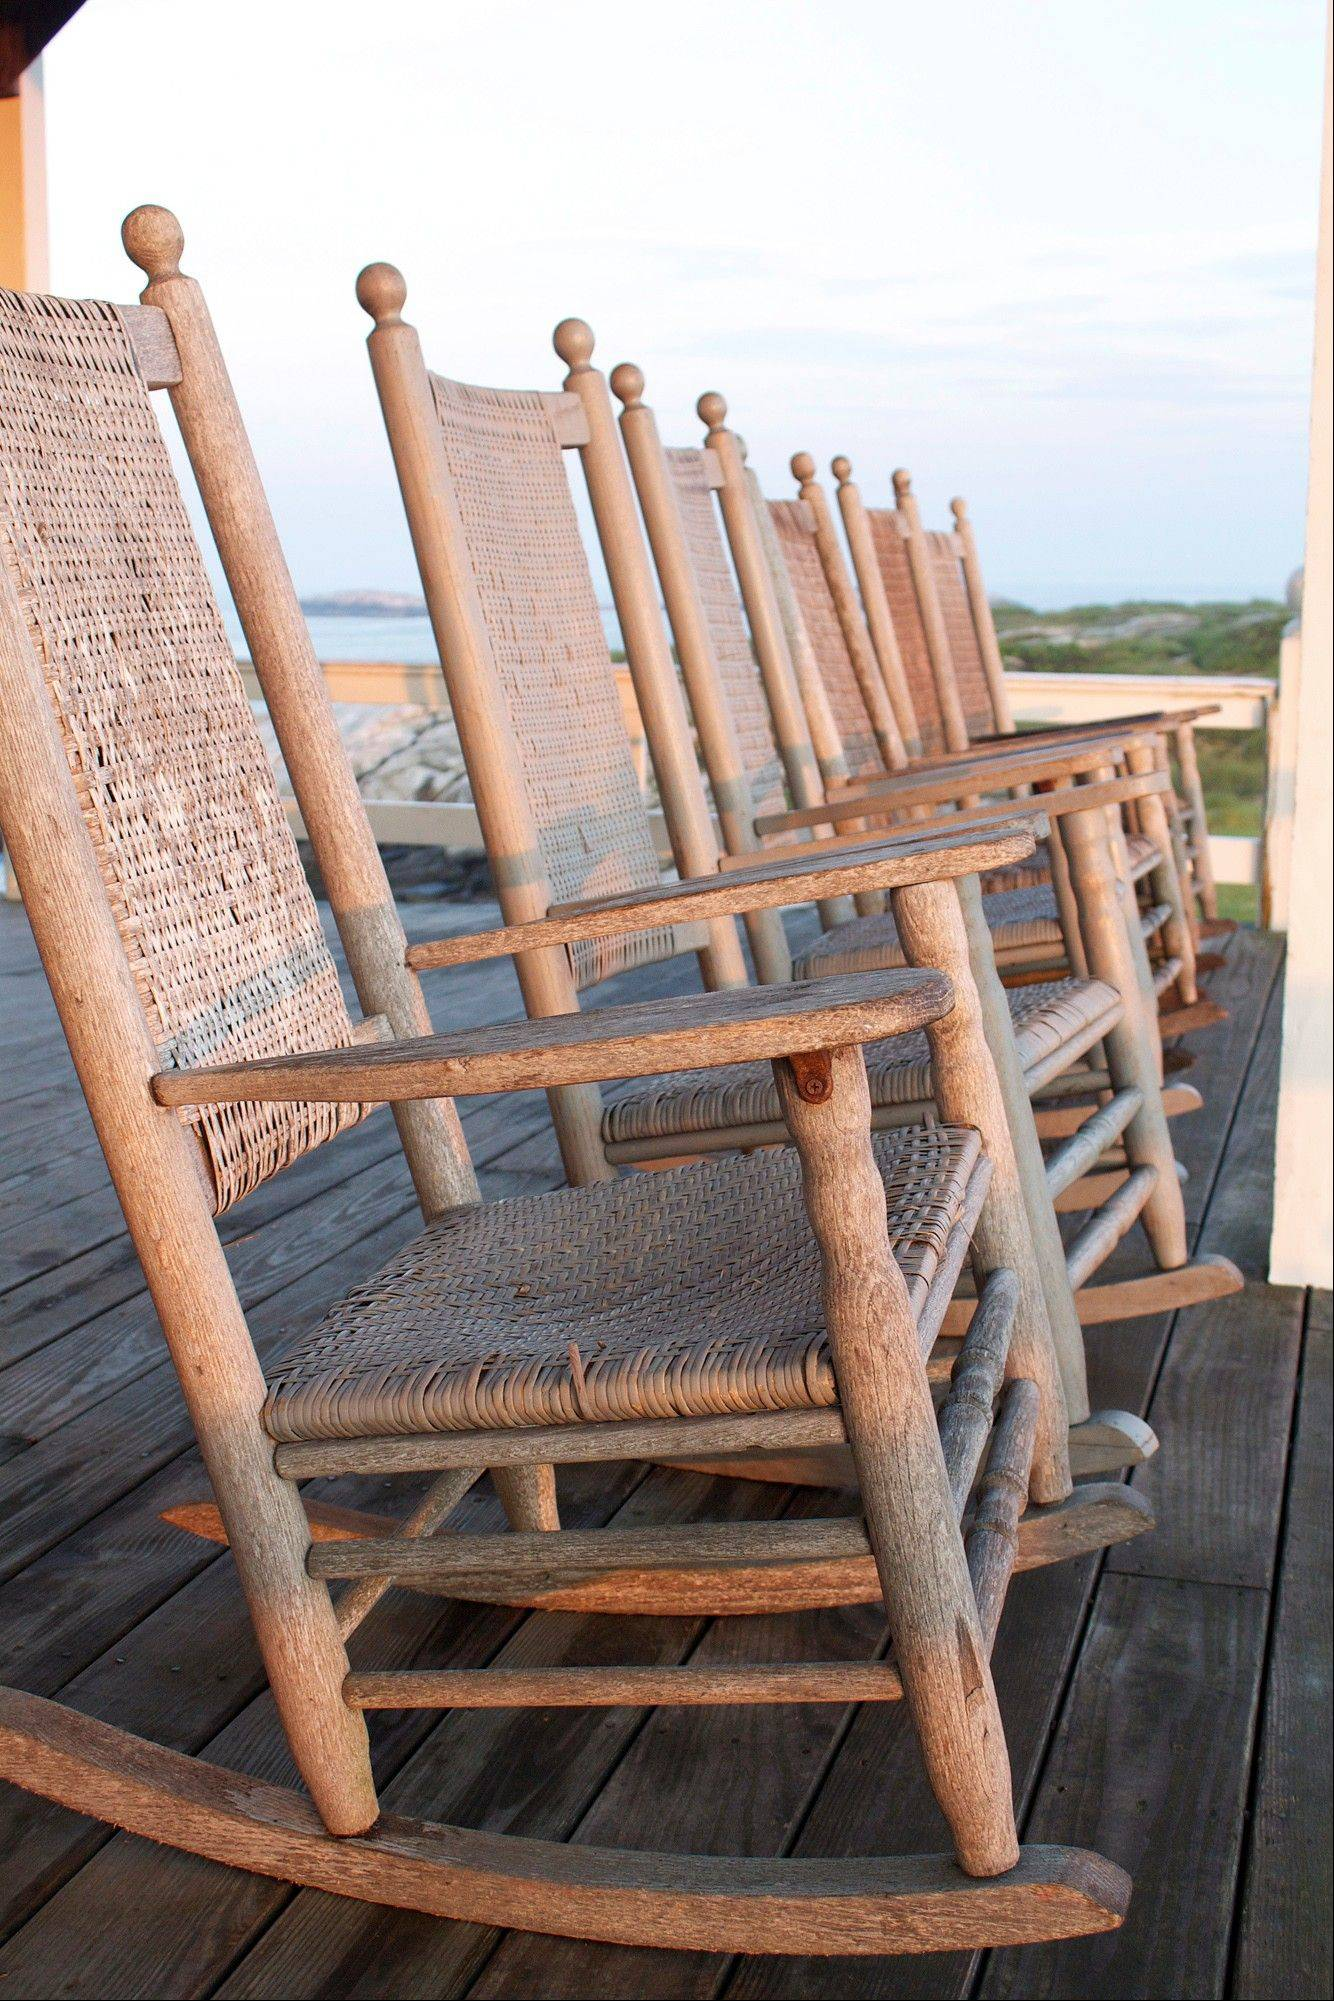 Rocking chairs sit on the veranda of the hotel on the Isles of Shoals Star Island in Rye, N.H.